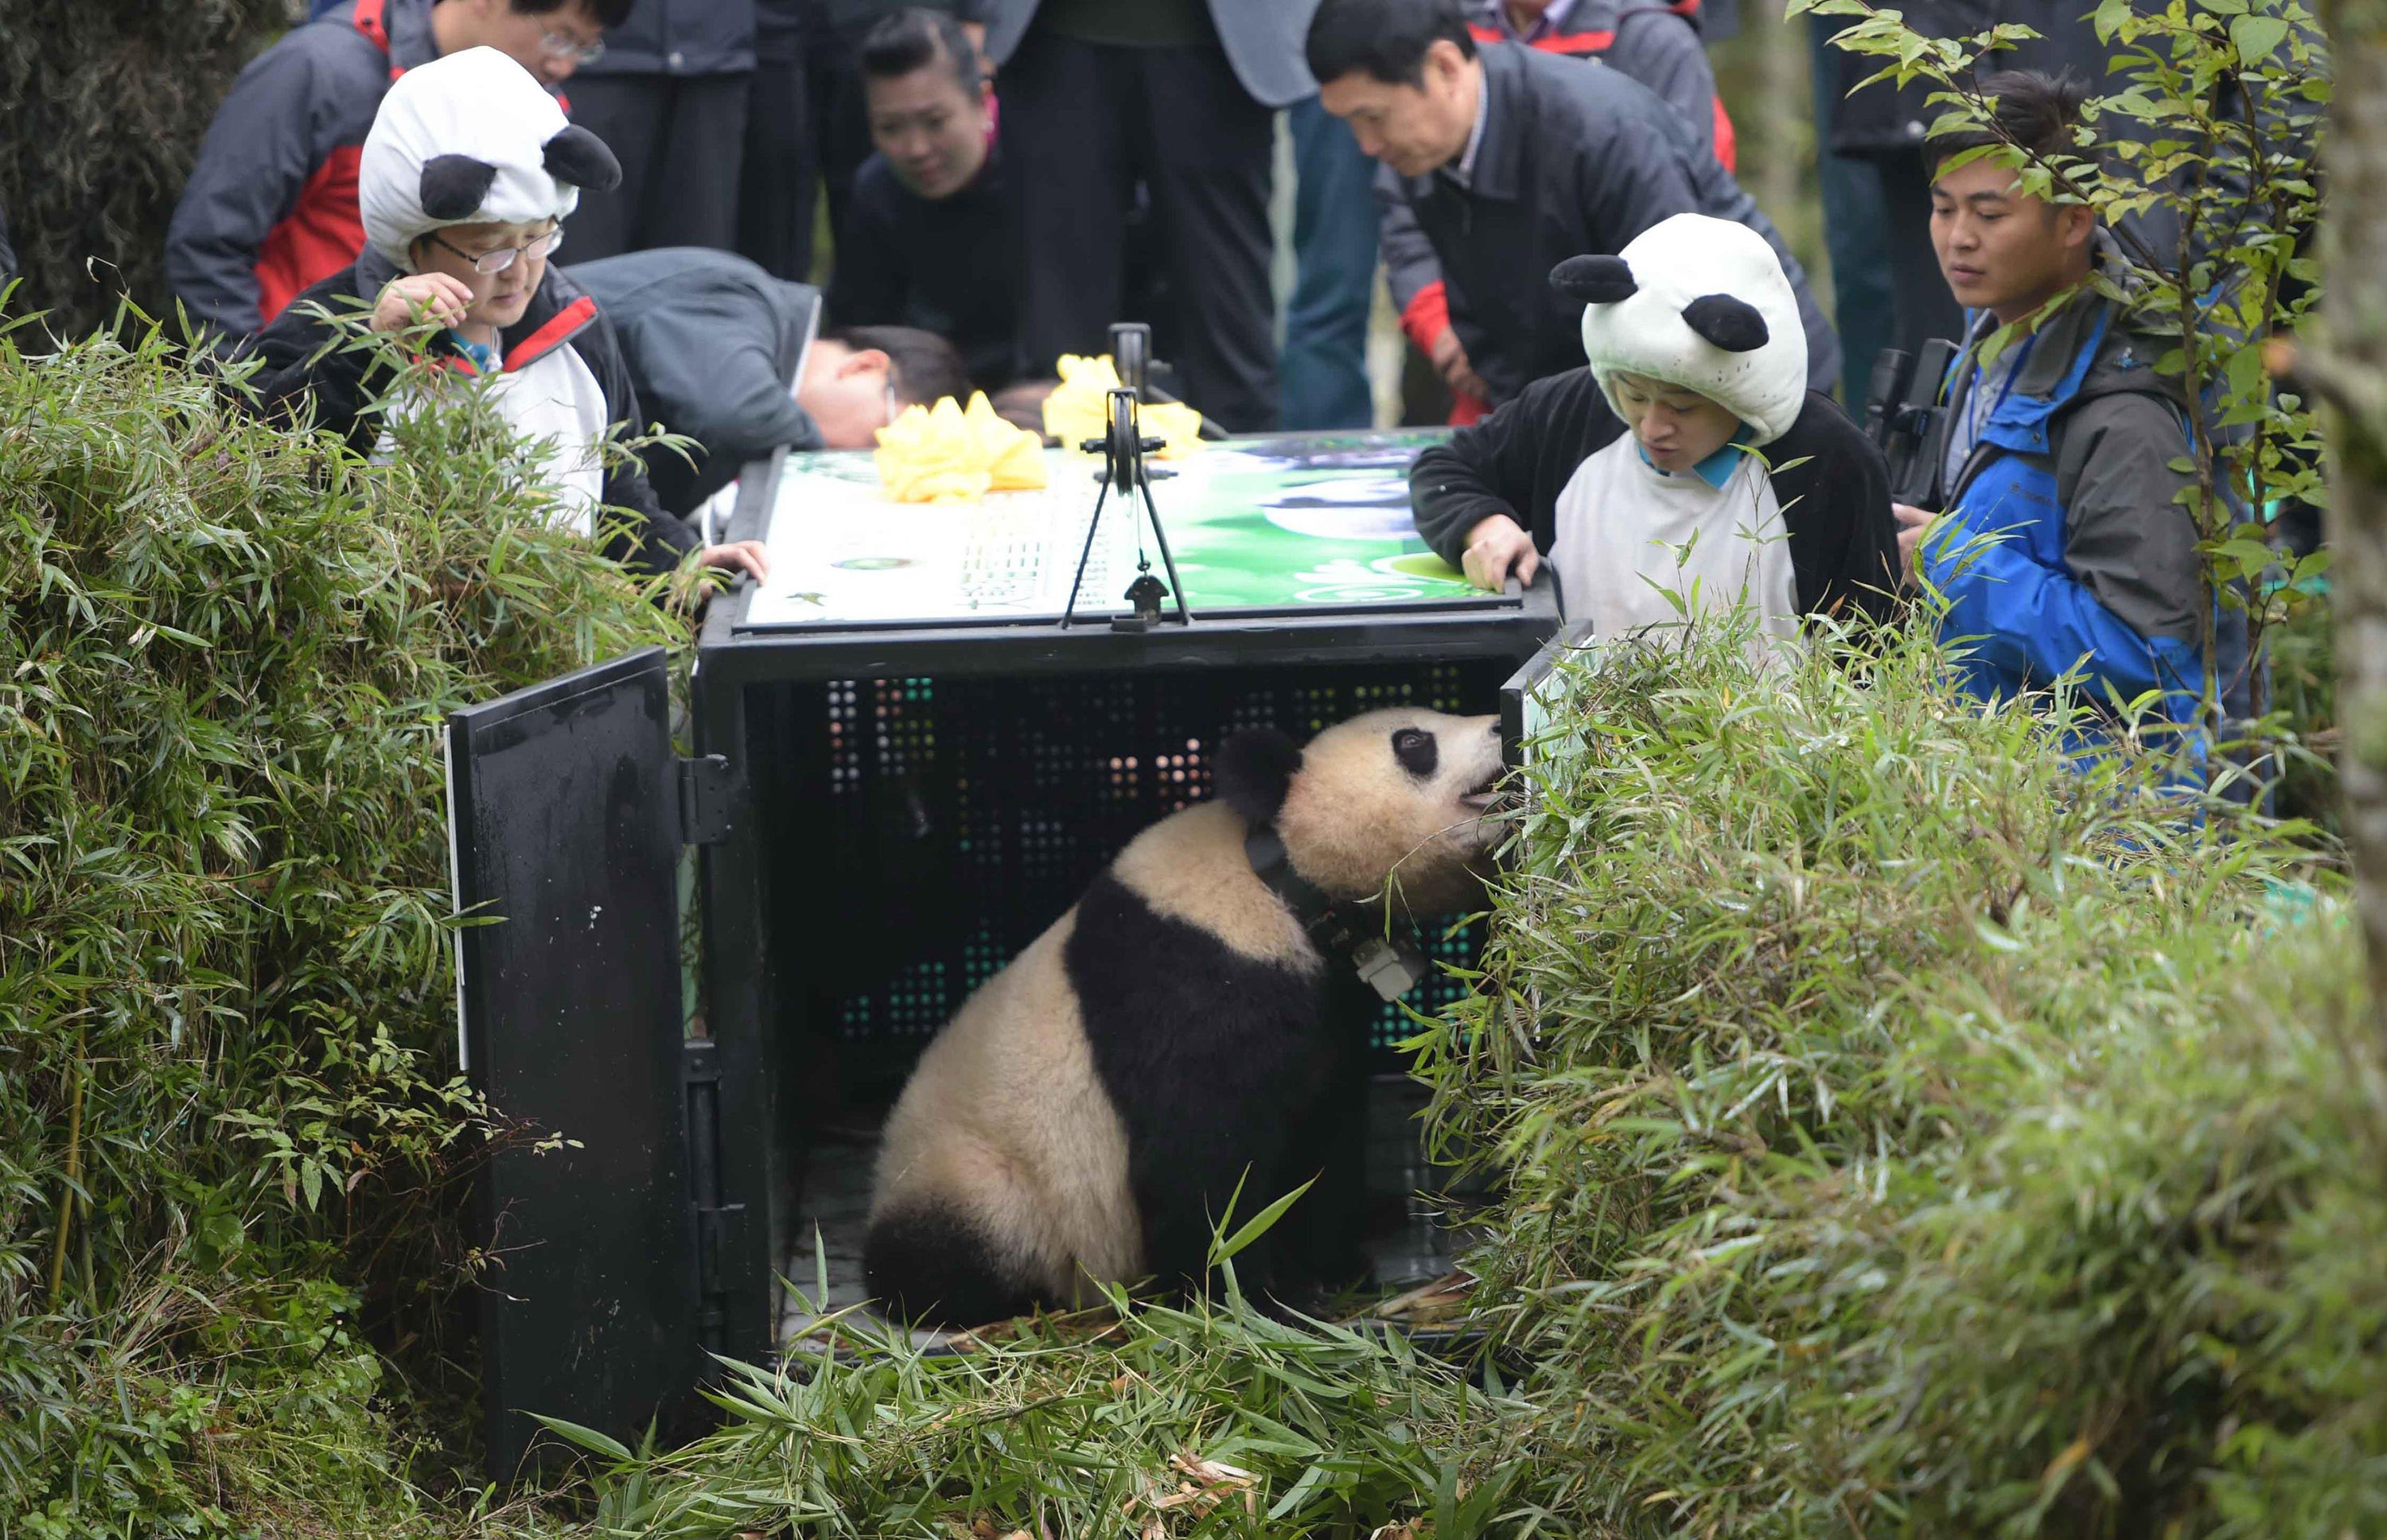 Giant panda Xue Xue is released into the wild at the Liziping Natural Reserve in Shimian, China on Oct. 14, 2014.